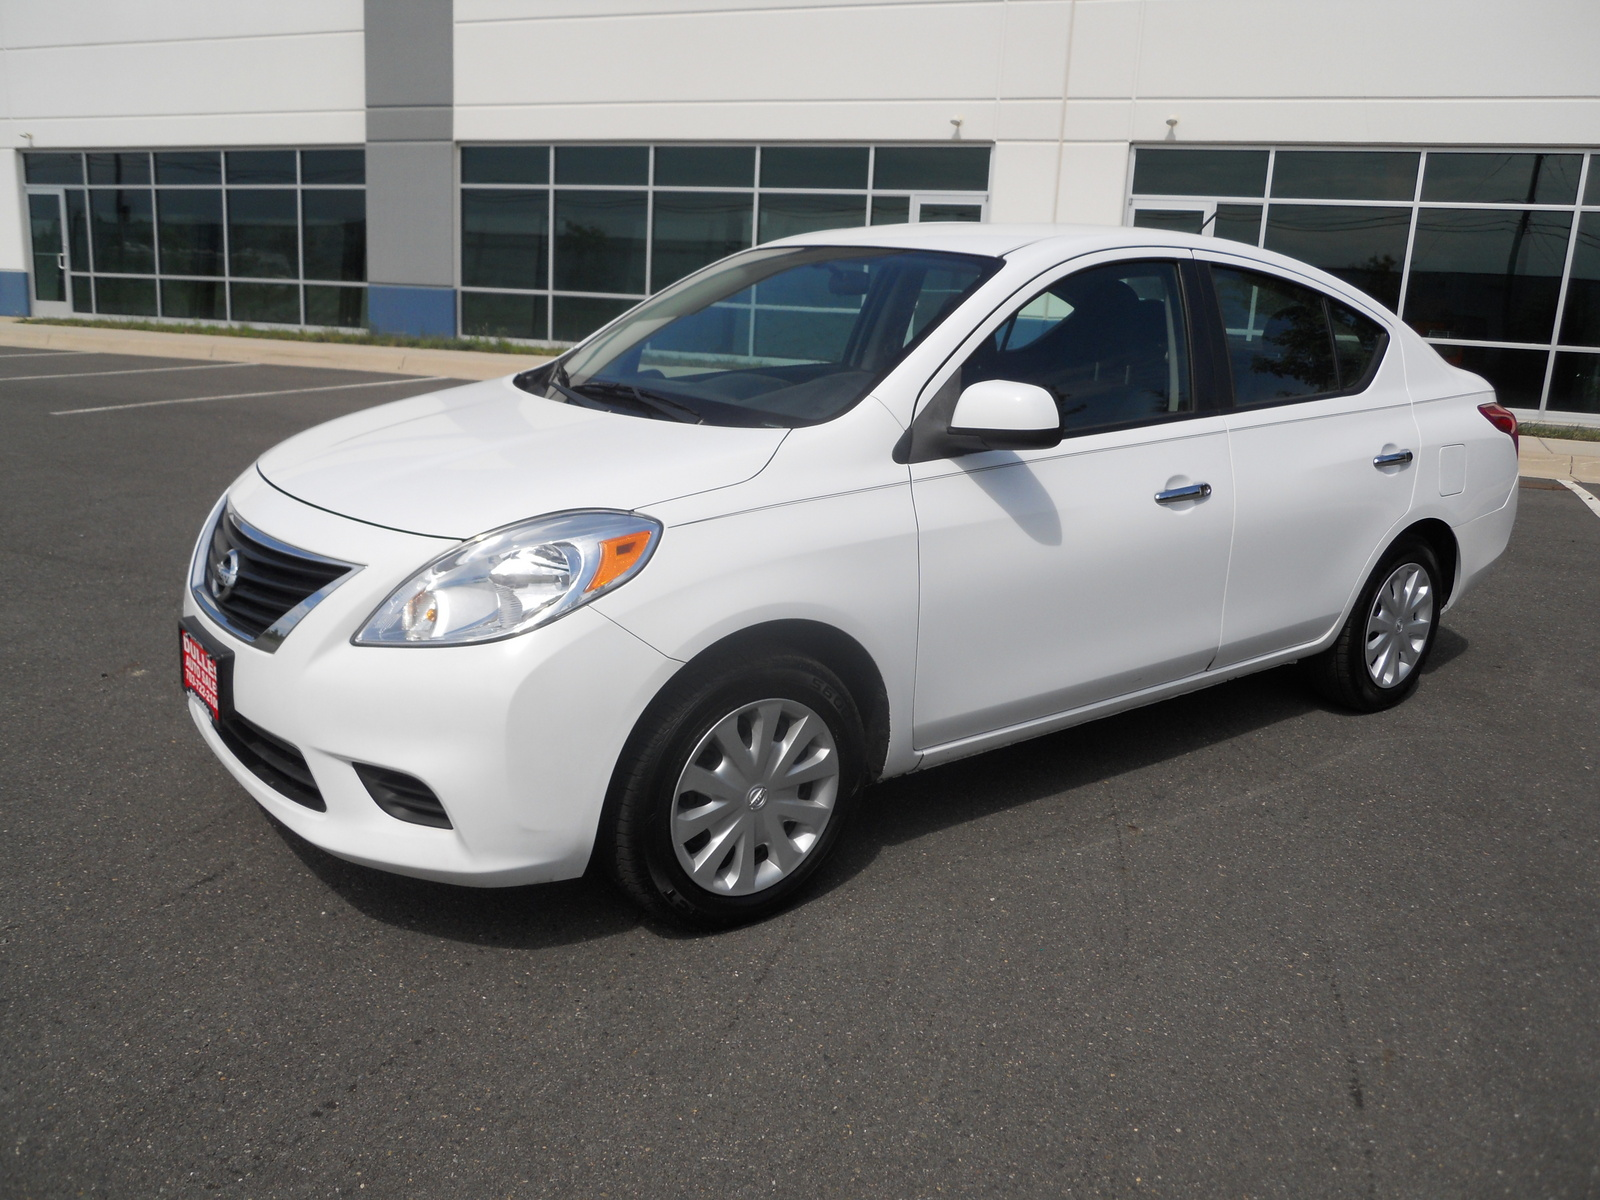 2014 nissan versa note sv specs price nissan canada autos post. Black Bedroom Furniture Sets. Home Design Ideas